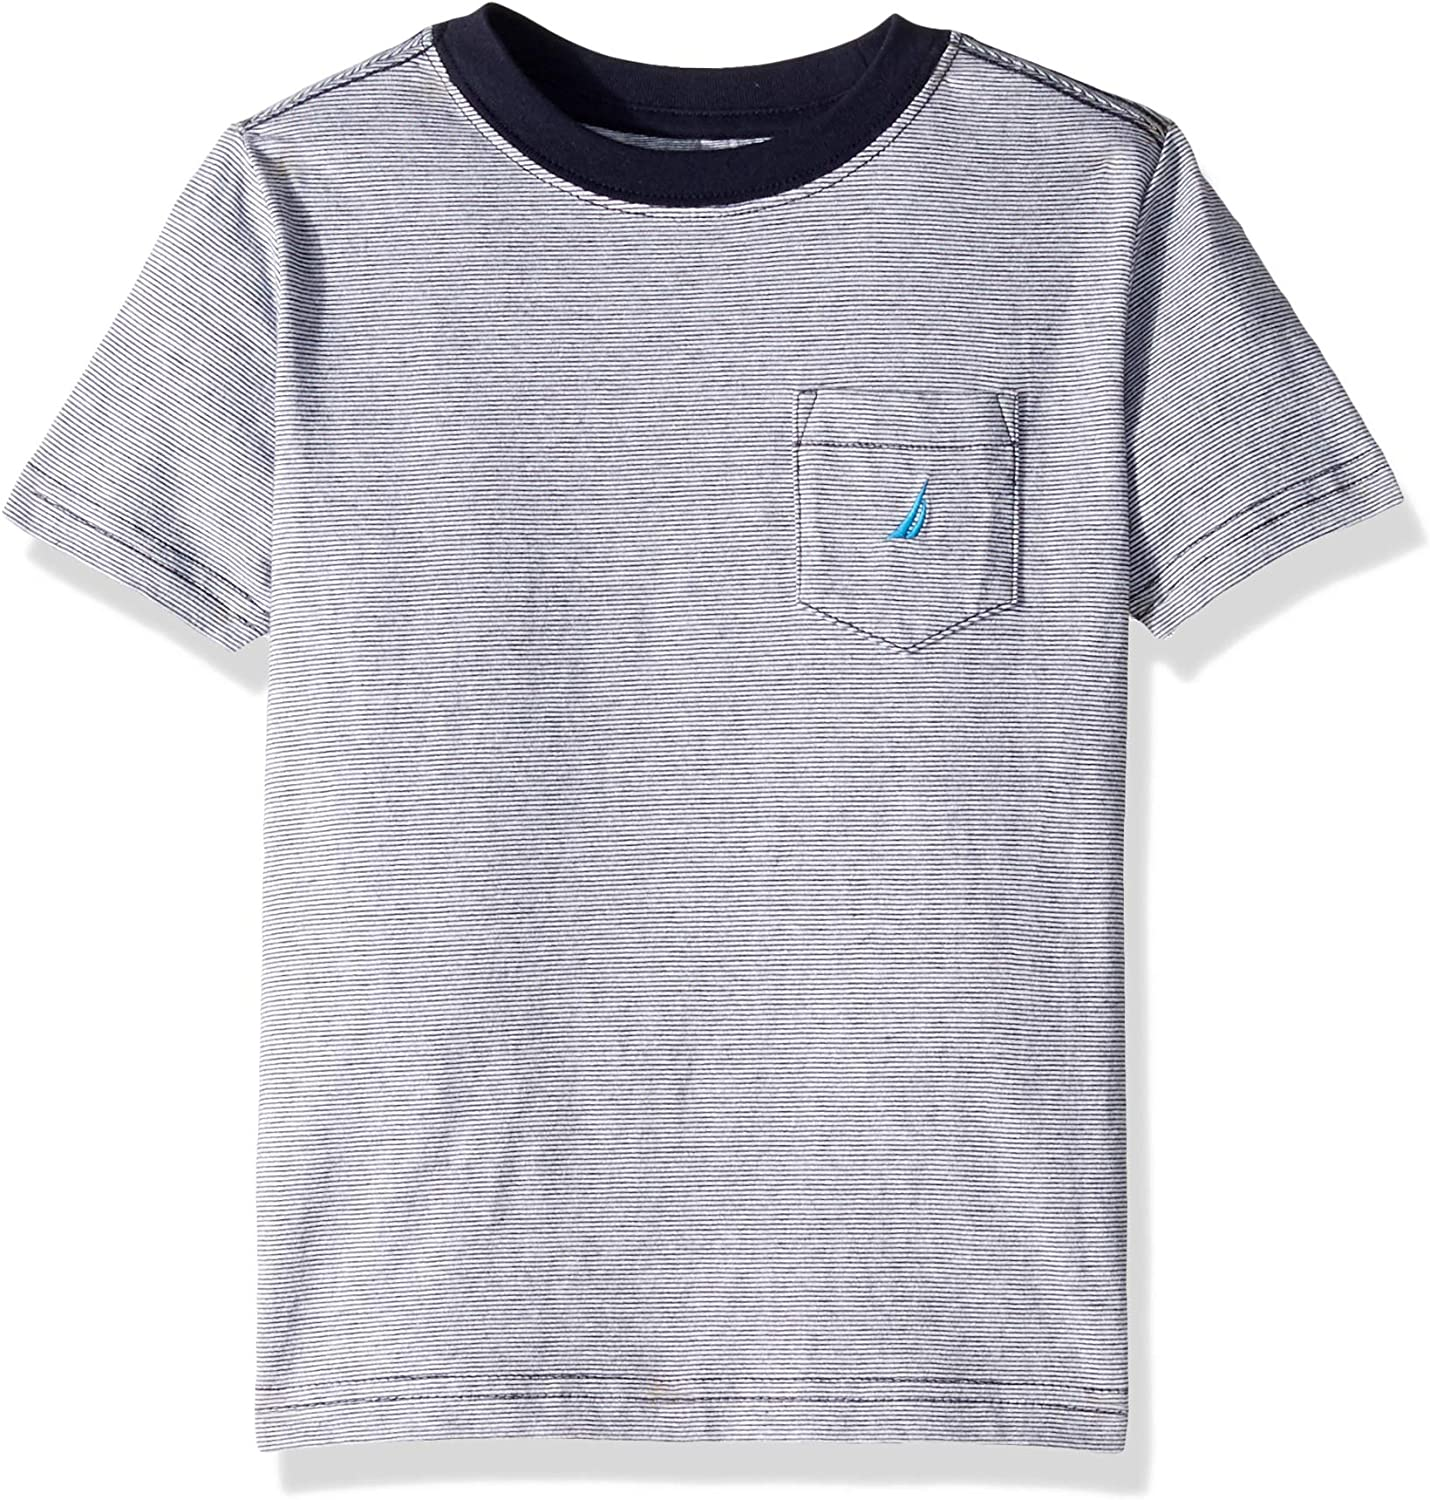 Nautica Boys Short Sleeve Solid Crew Neck Tee